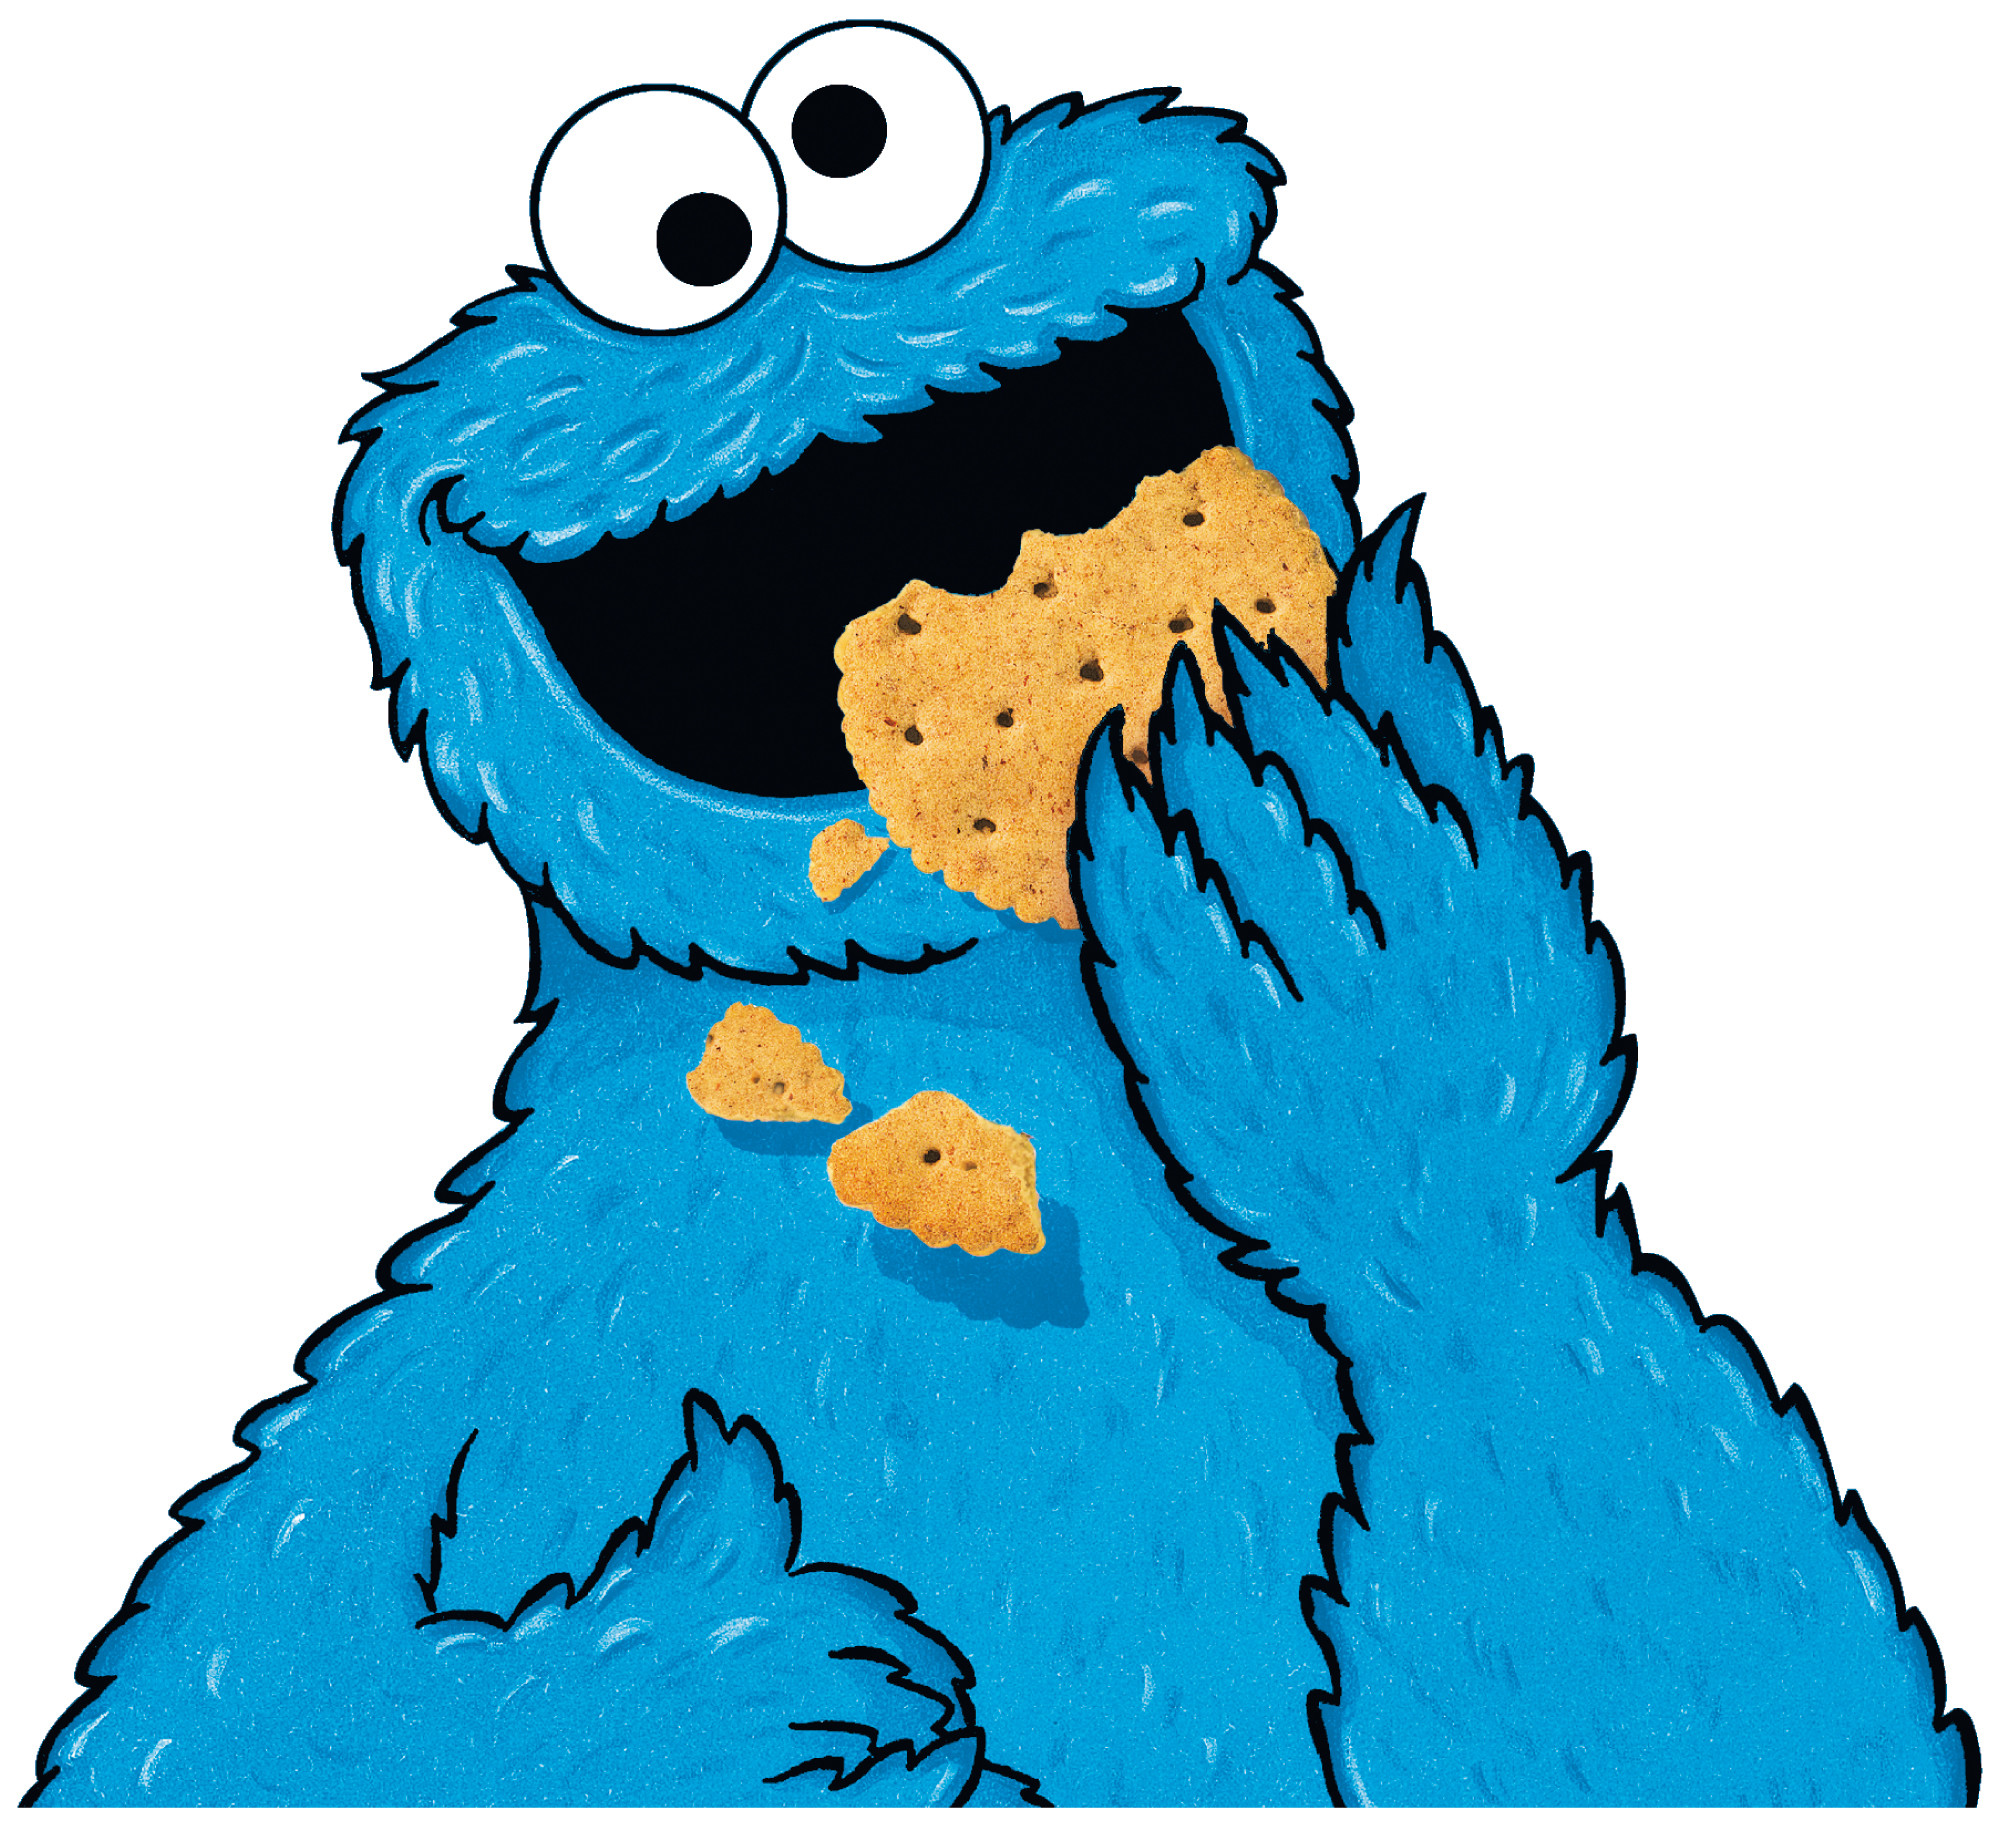 2000x1822 Cute Cookie Monster Wallpaper 58 Images